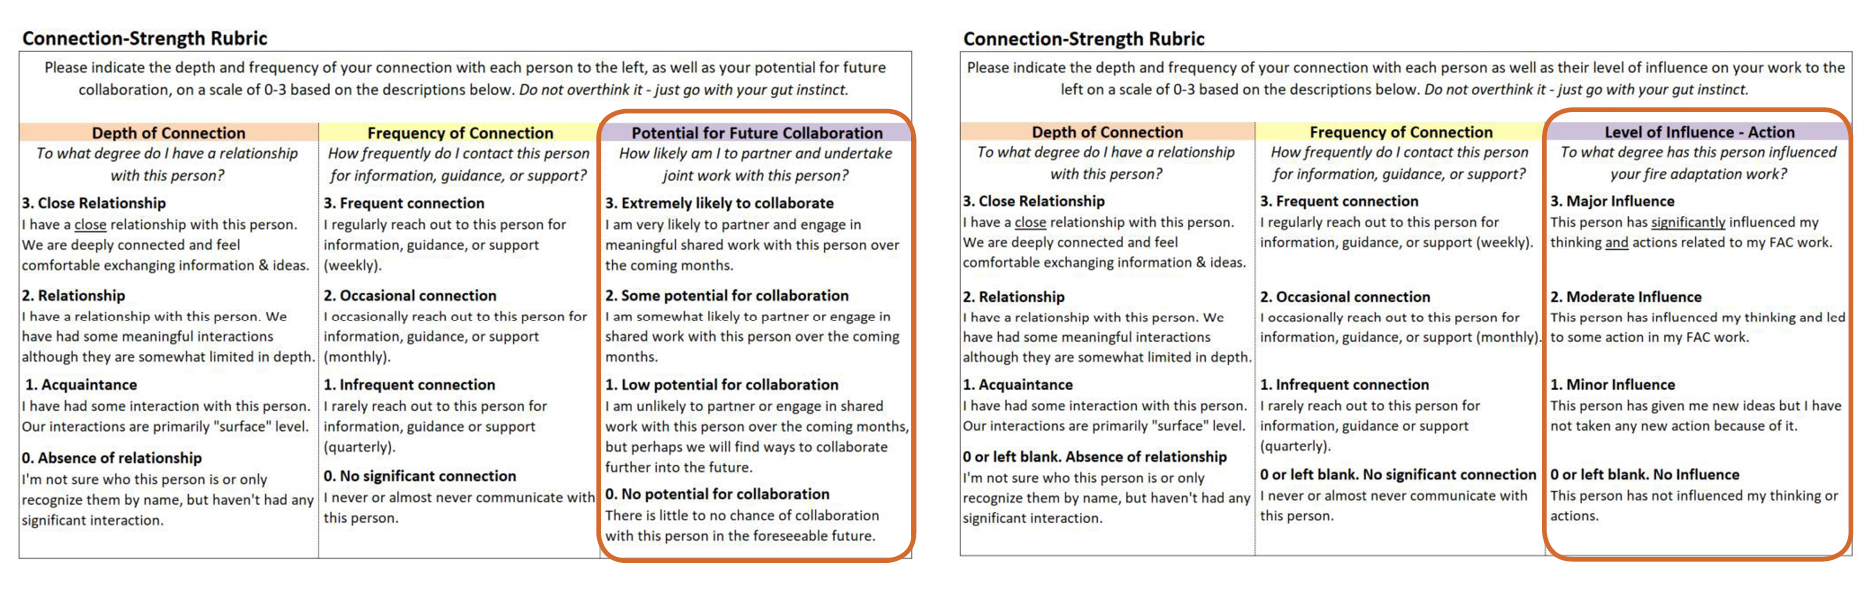 Rubric side by side.png